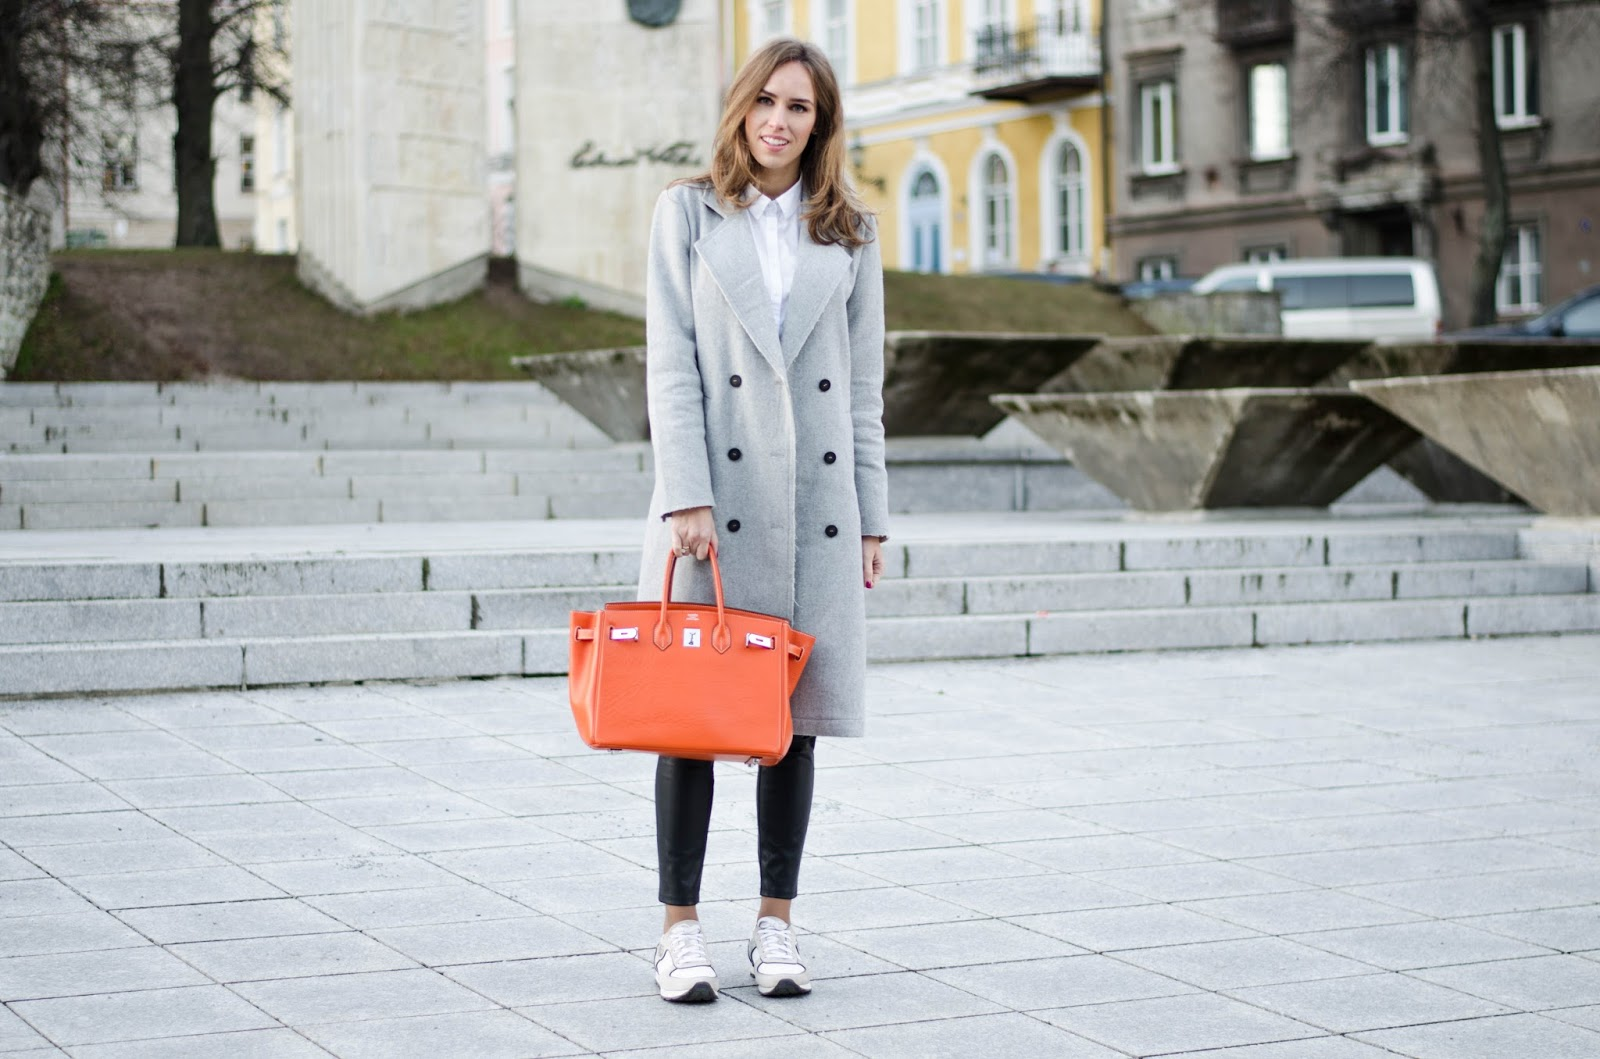 a01b79328af0 kristjaana mere gray wool coat white sneakers orange hermes birkin bag